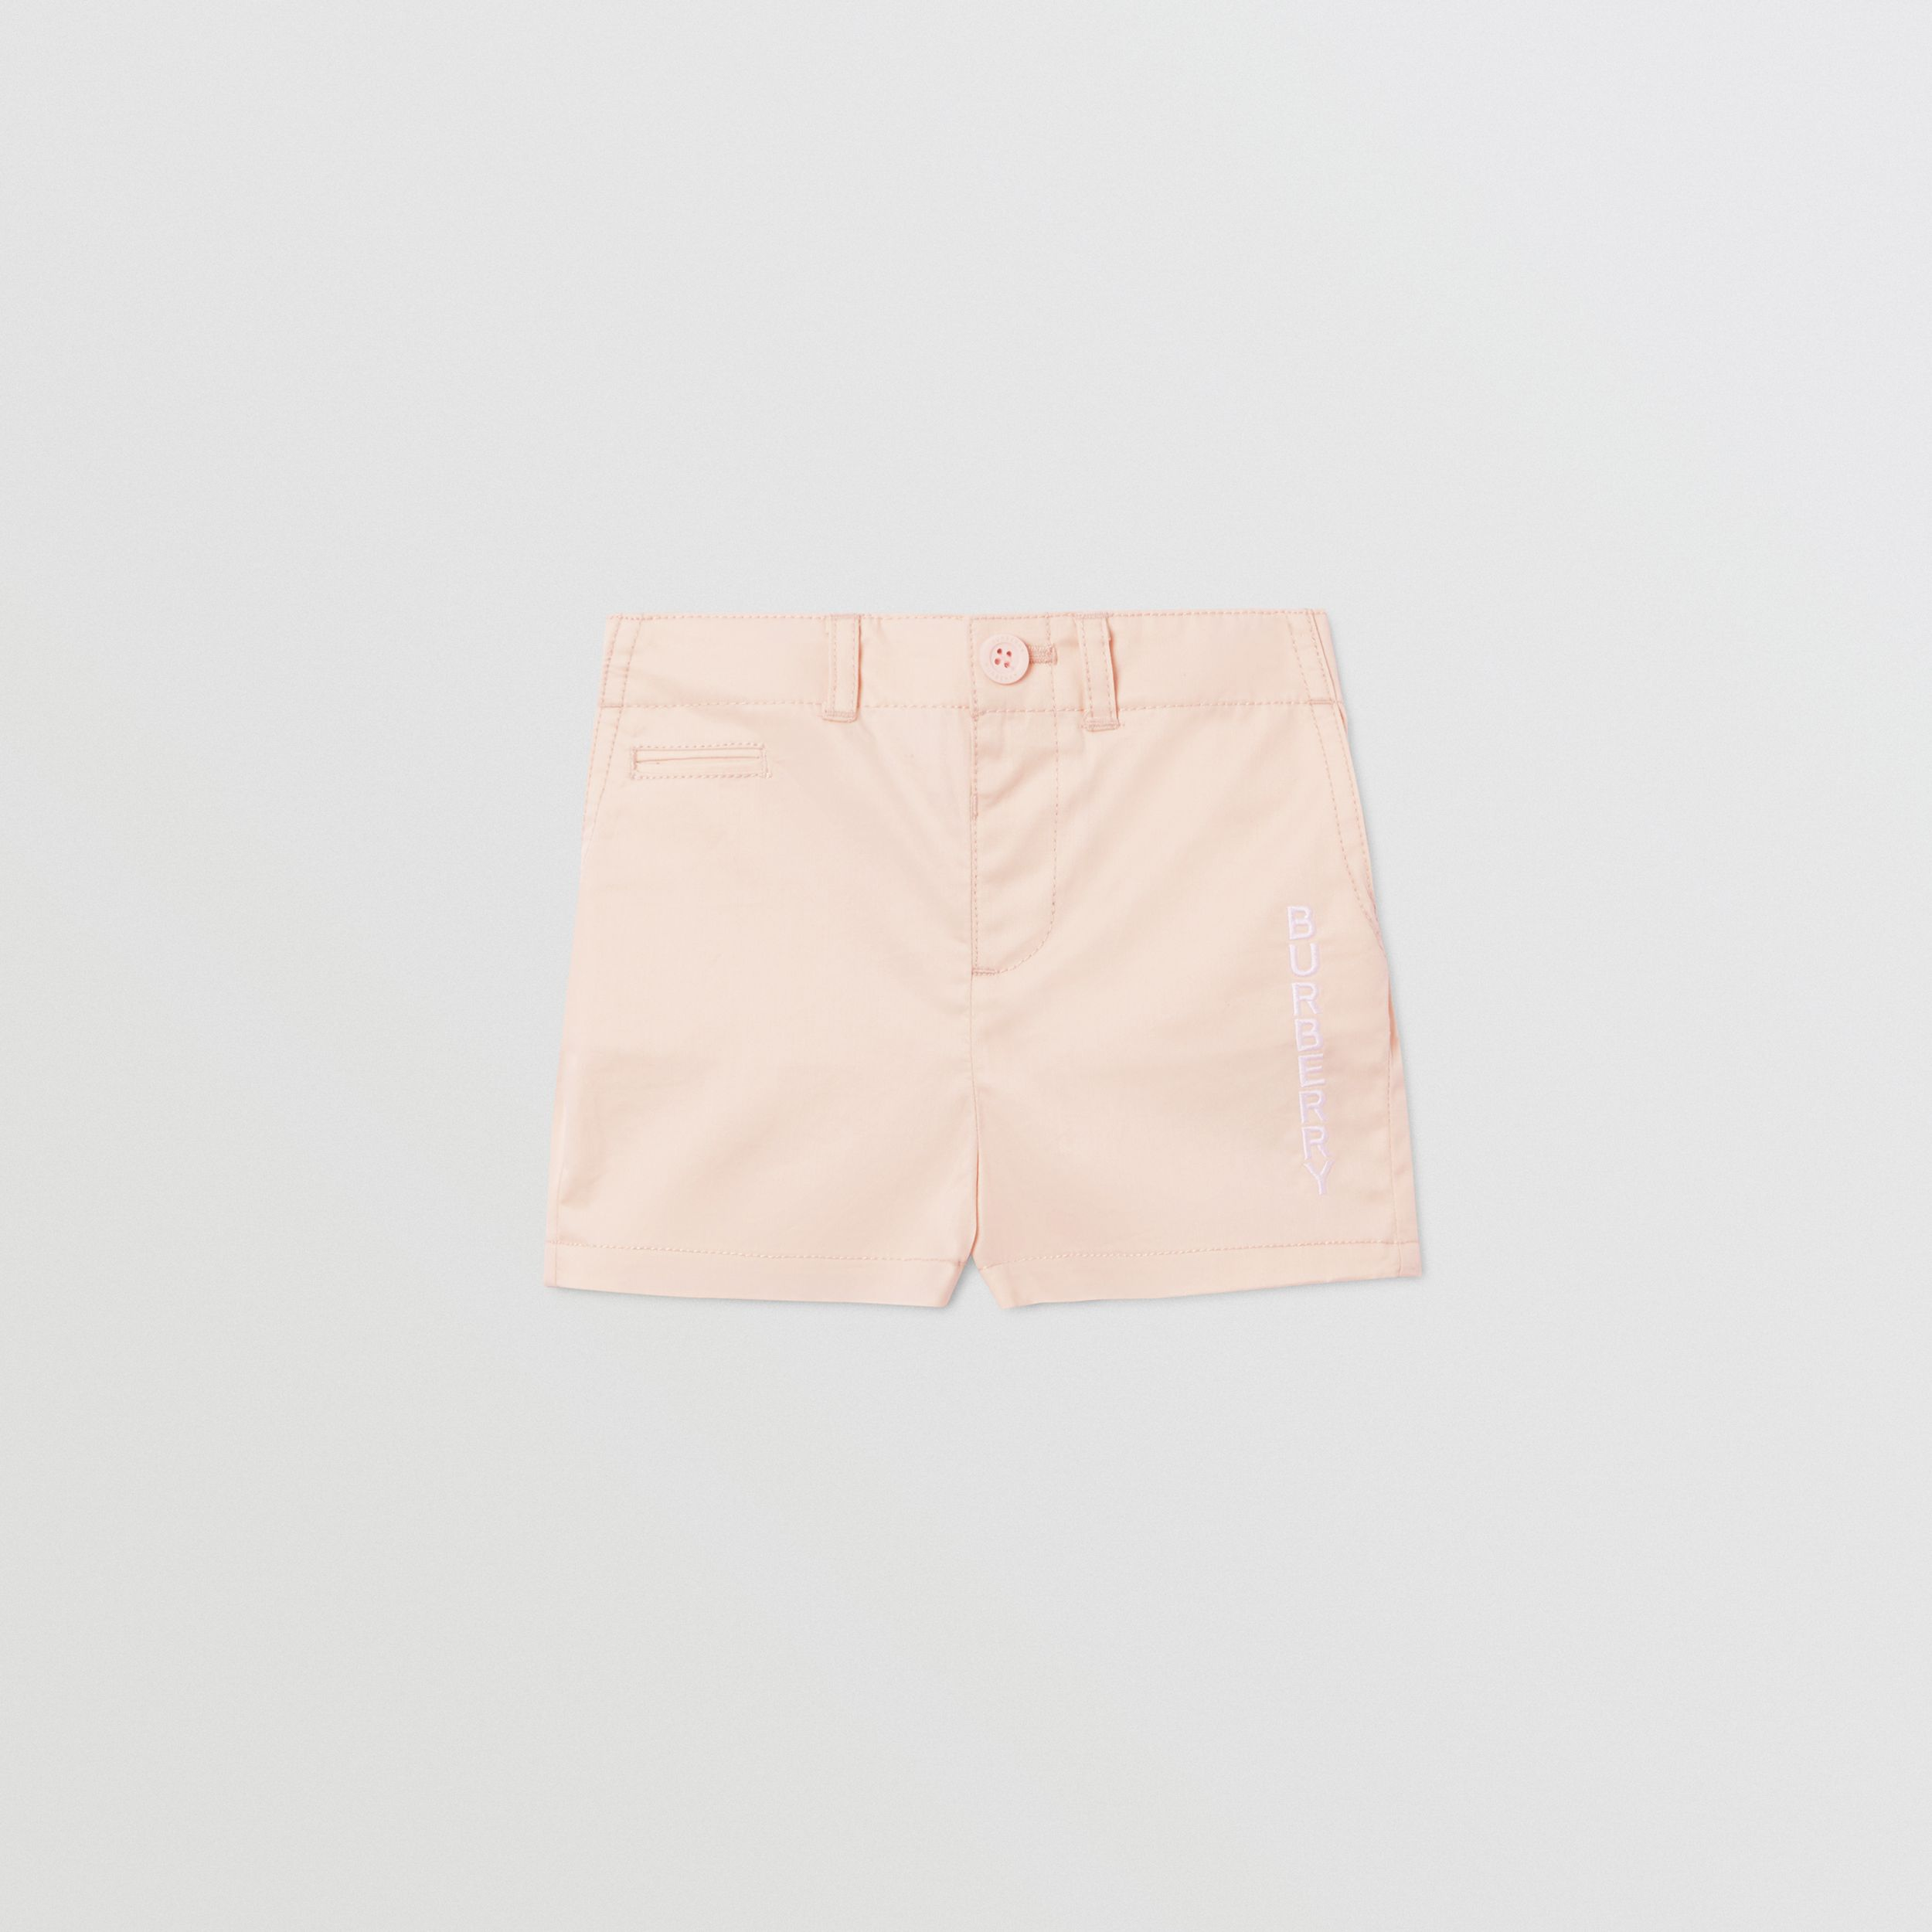 Embroidered Logo Cotton Shorts in Soft Pink - Children | Burberry - 1